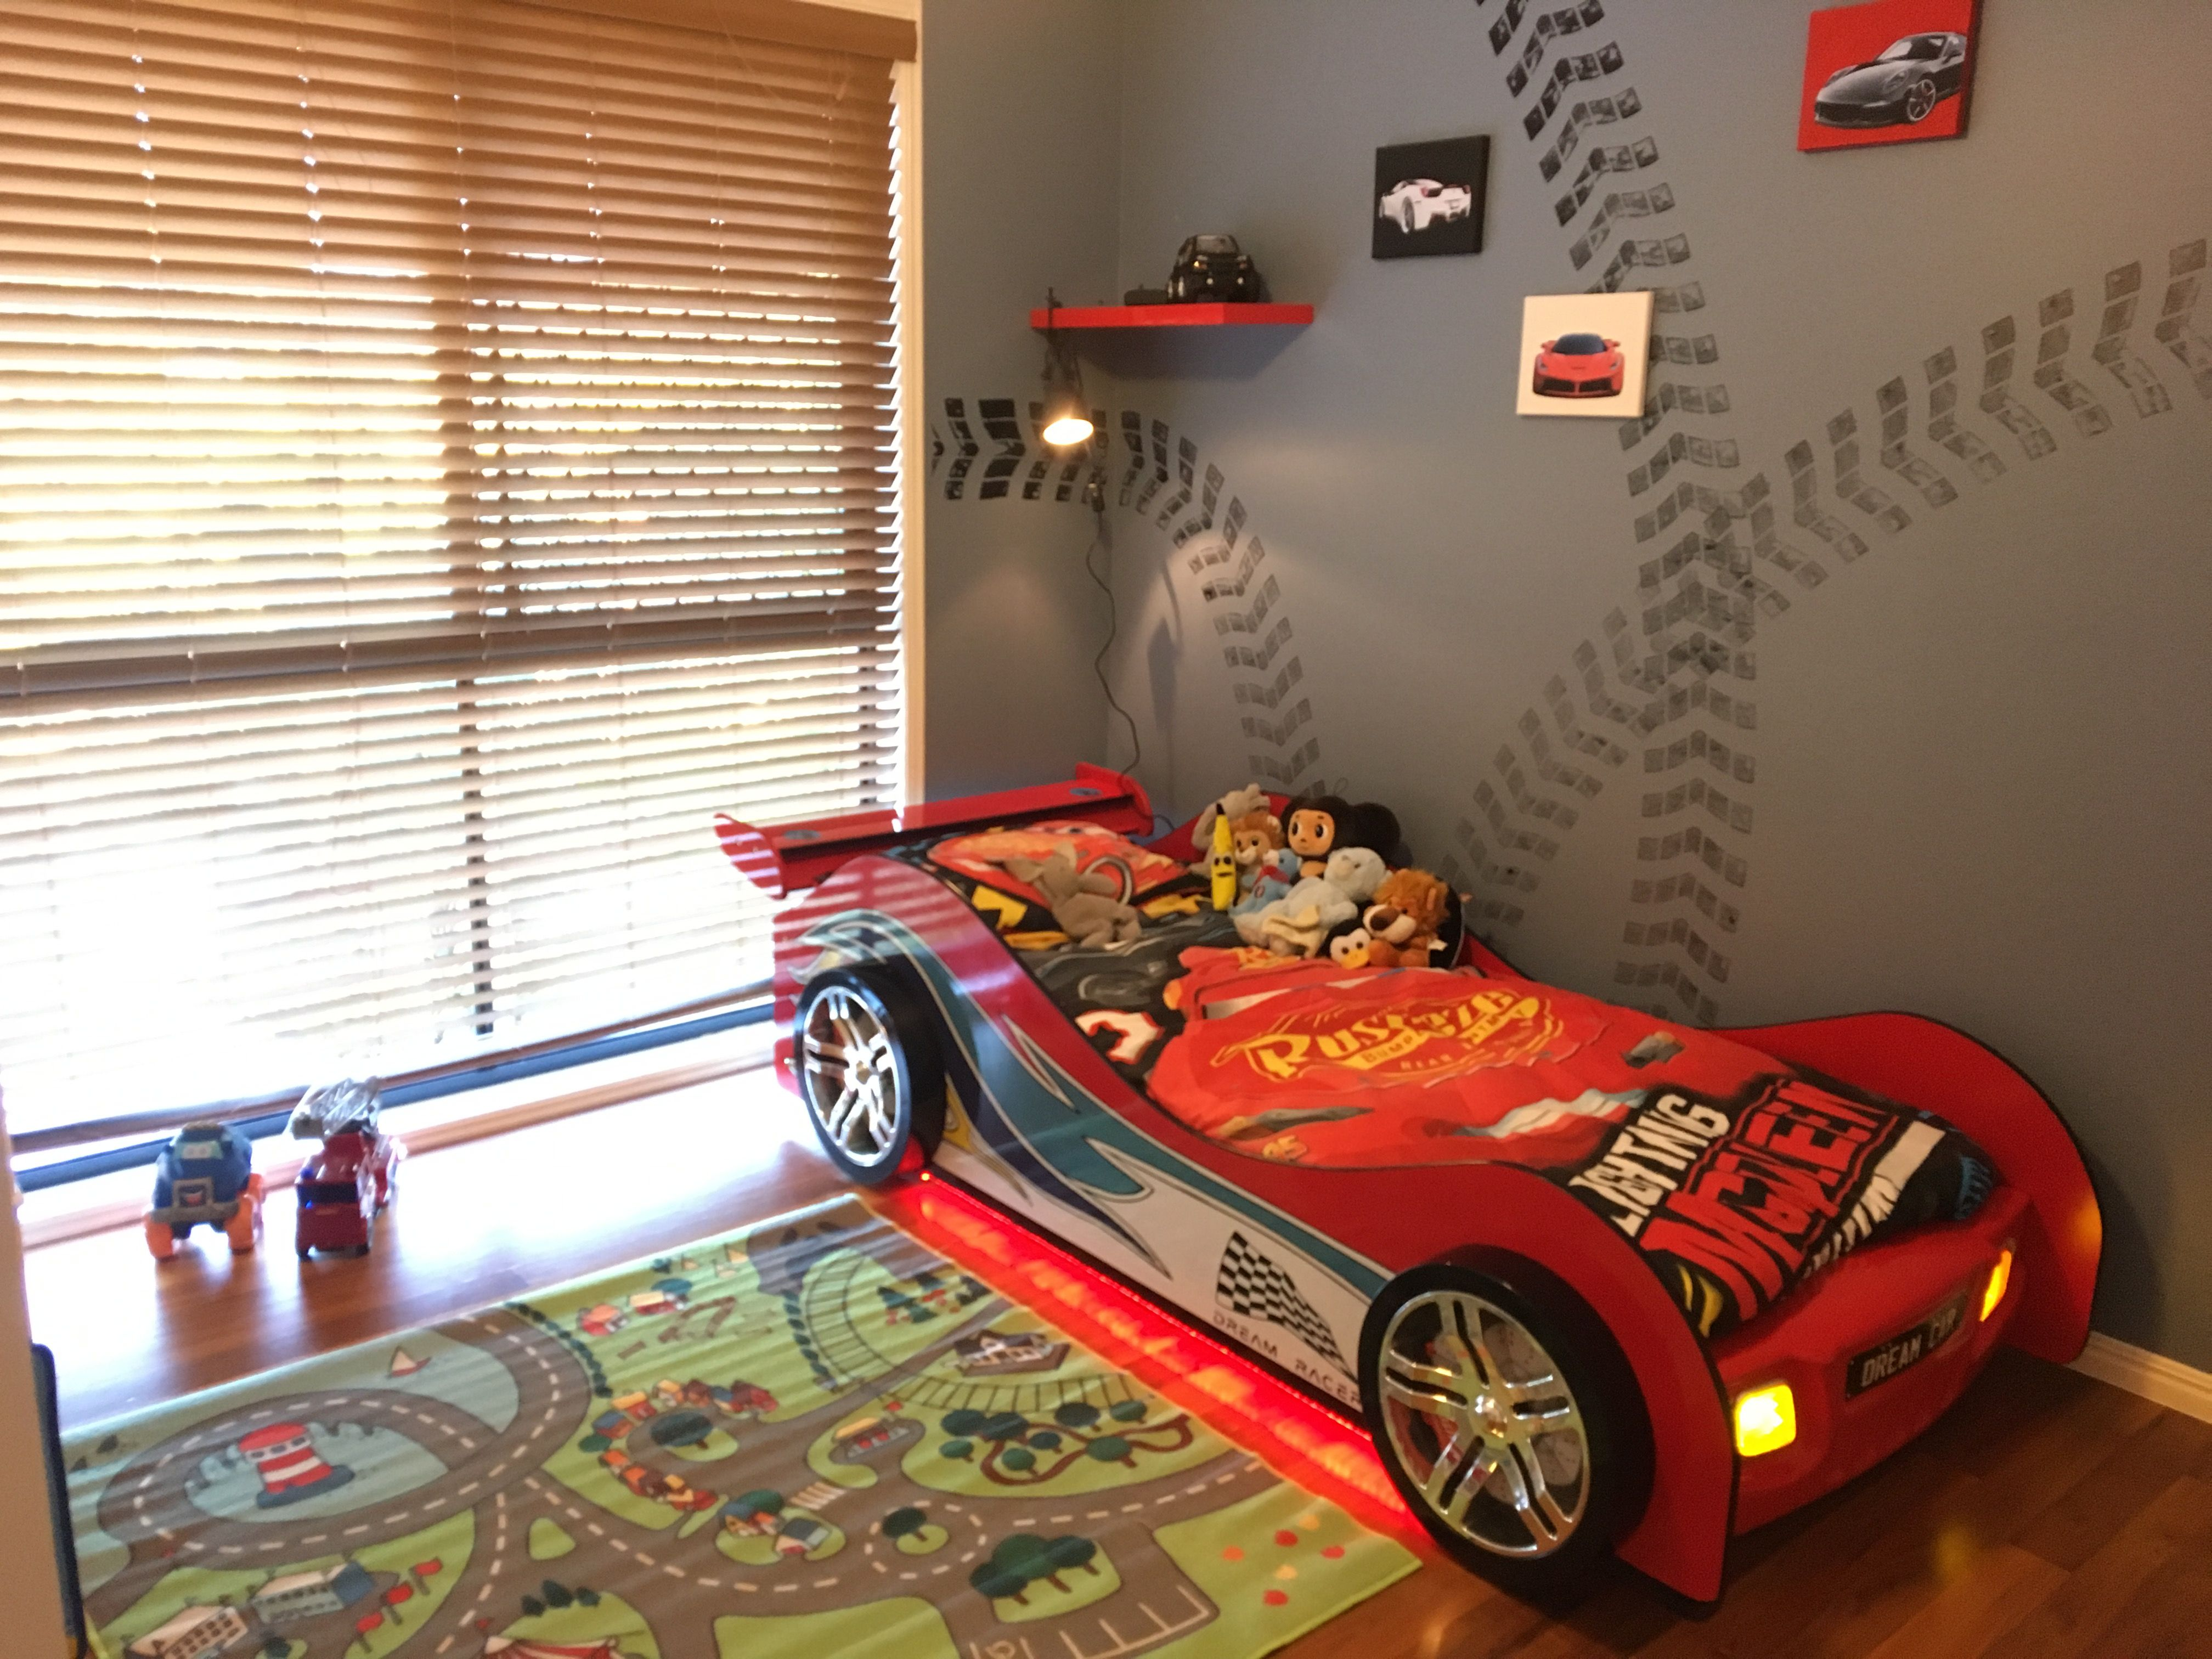 Racing Theme Room For Our 3 Year Old Boy Room Bedroom Racing Theme Carbed Car Bed 3yearold Red Blac Cars Bedroom Decor Cars Room Disney Cars Bedroom